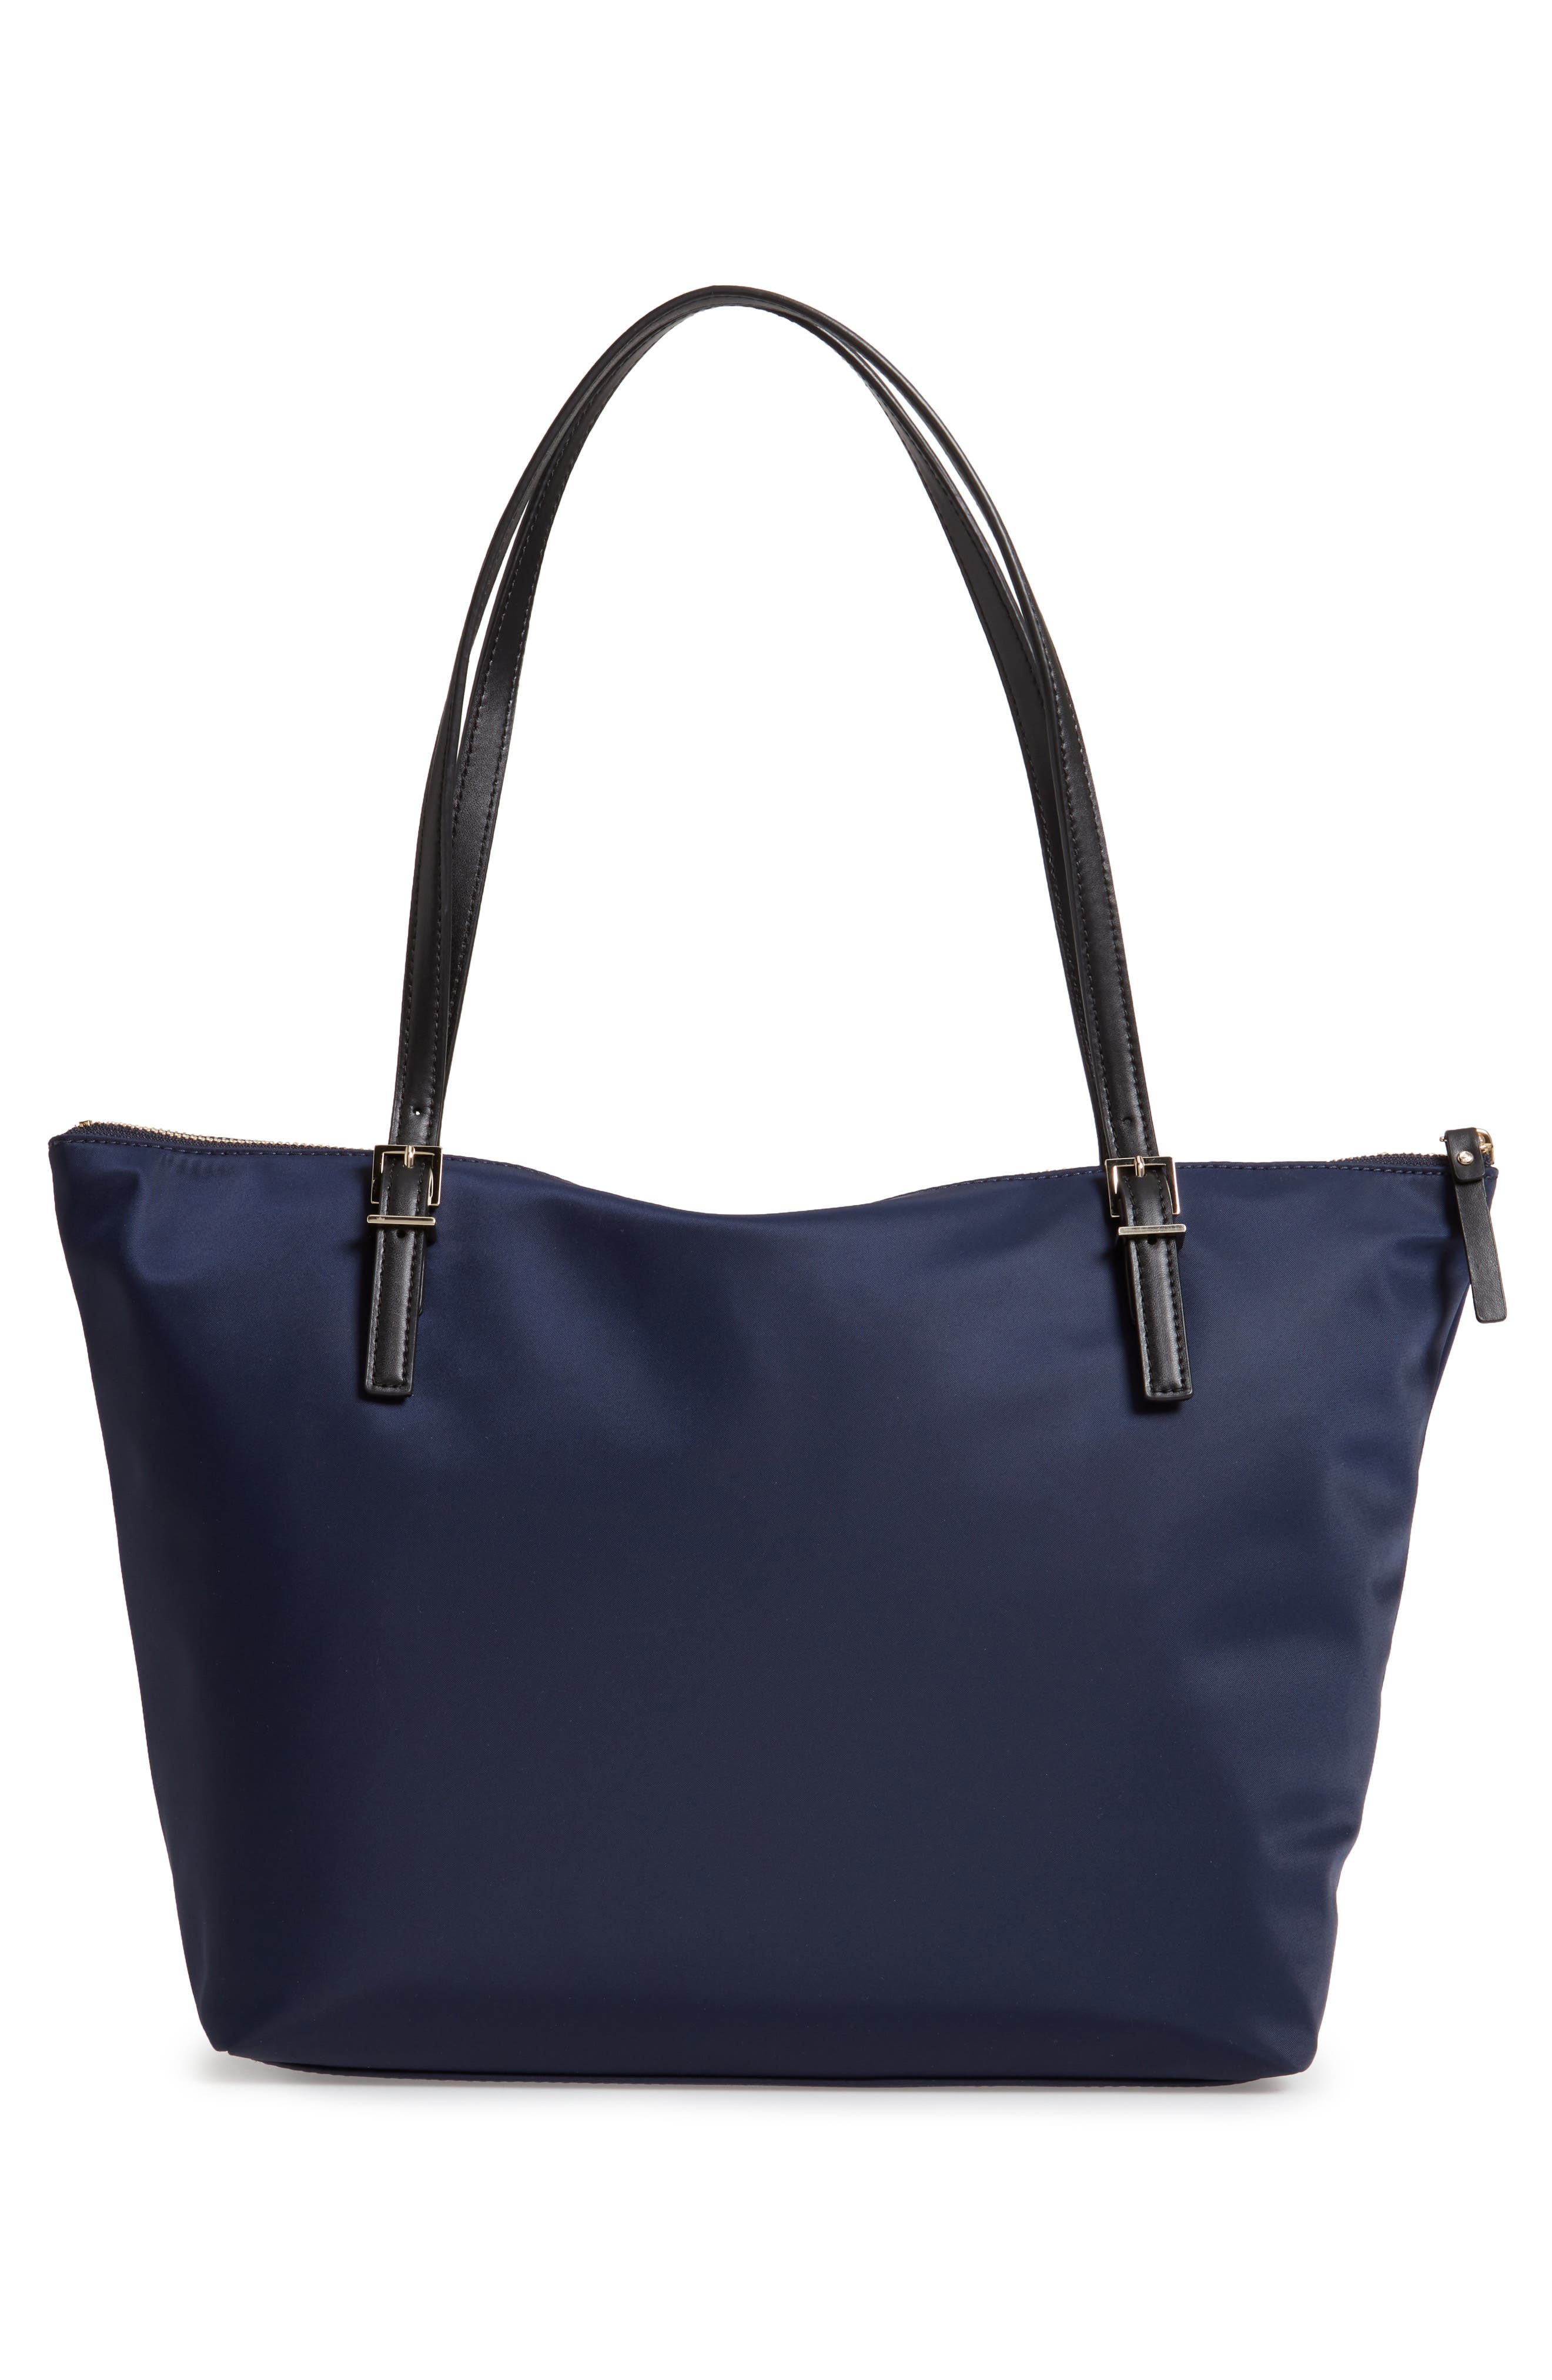 KATE SPADE NEW YORK,                             watson lane maya nylon tote,                             Alternate thumbnail 3, color,                             RICH NAVY